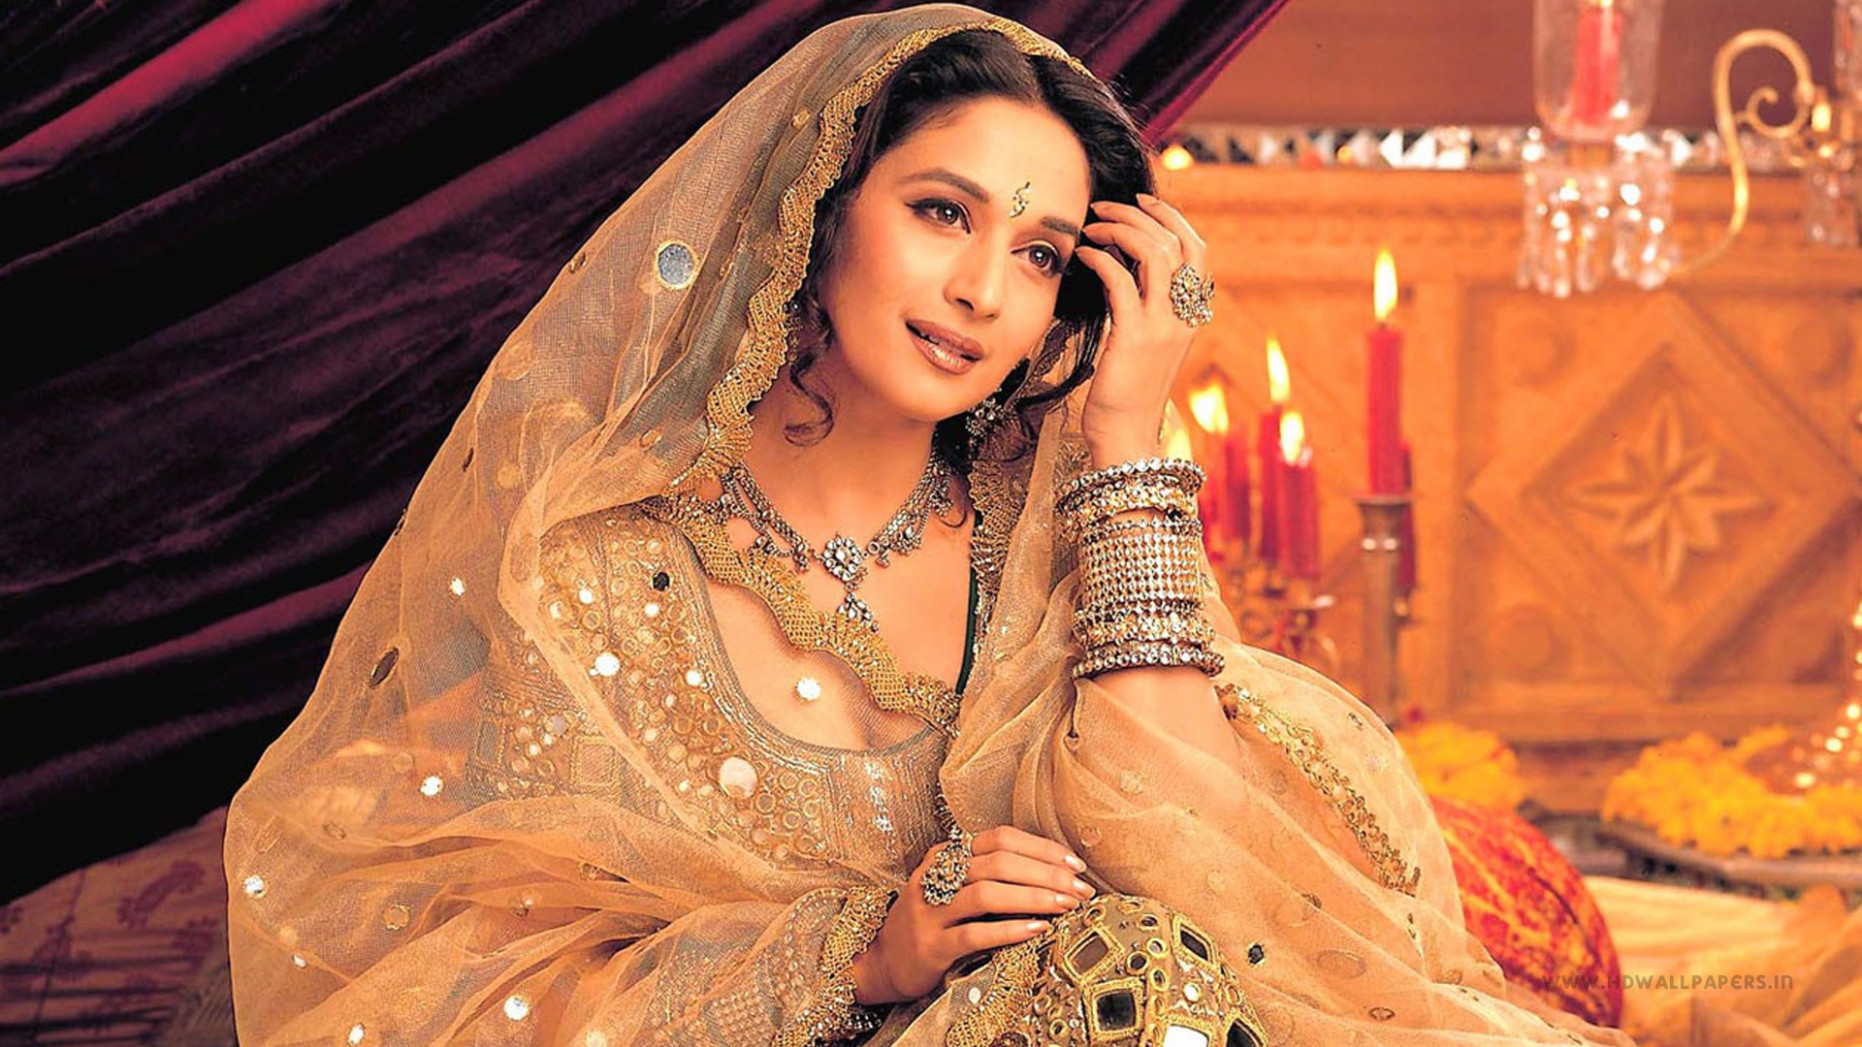 Madhuri Dixit Devdas Wallpapers | HD Wallpapers | ID #16424